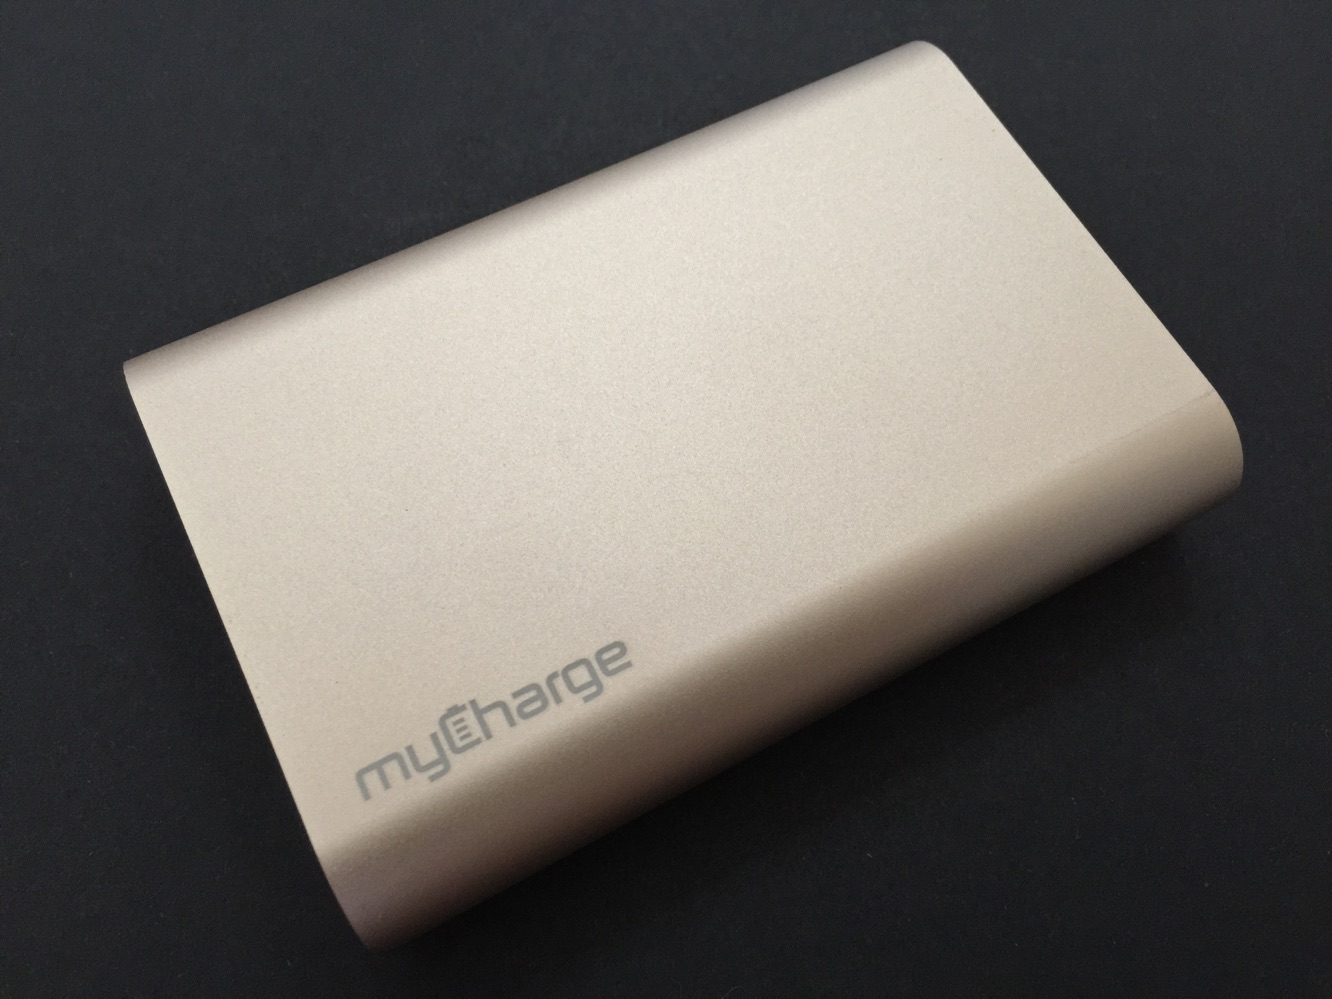 Review: MyCharge RazorUltra